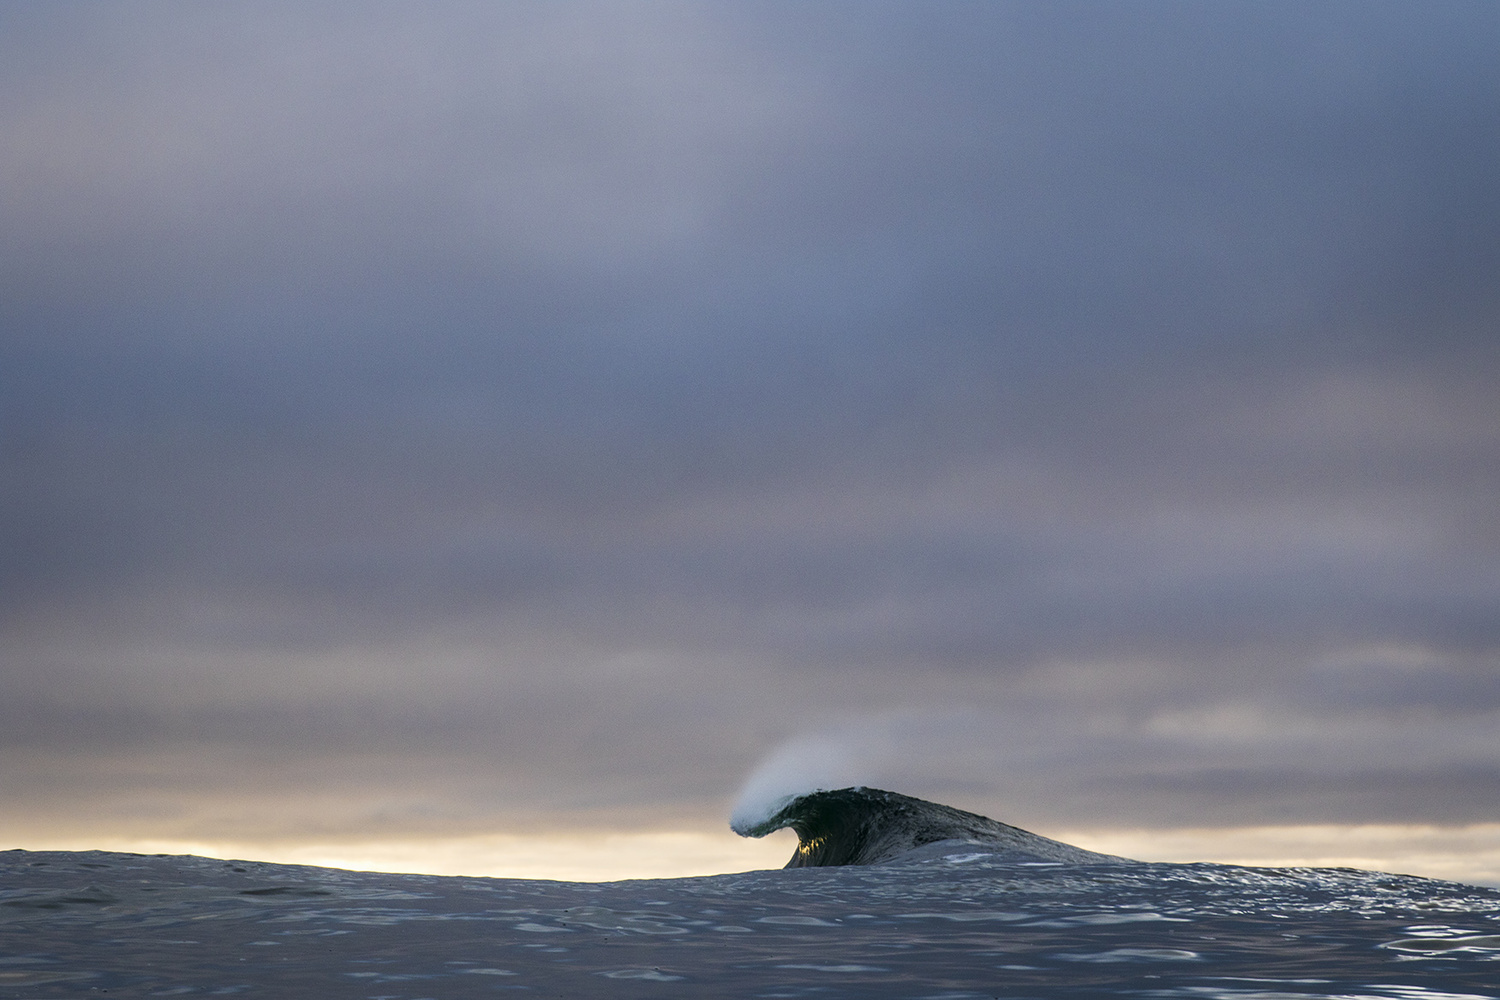 Perfect Wave by Marcus Paladino